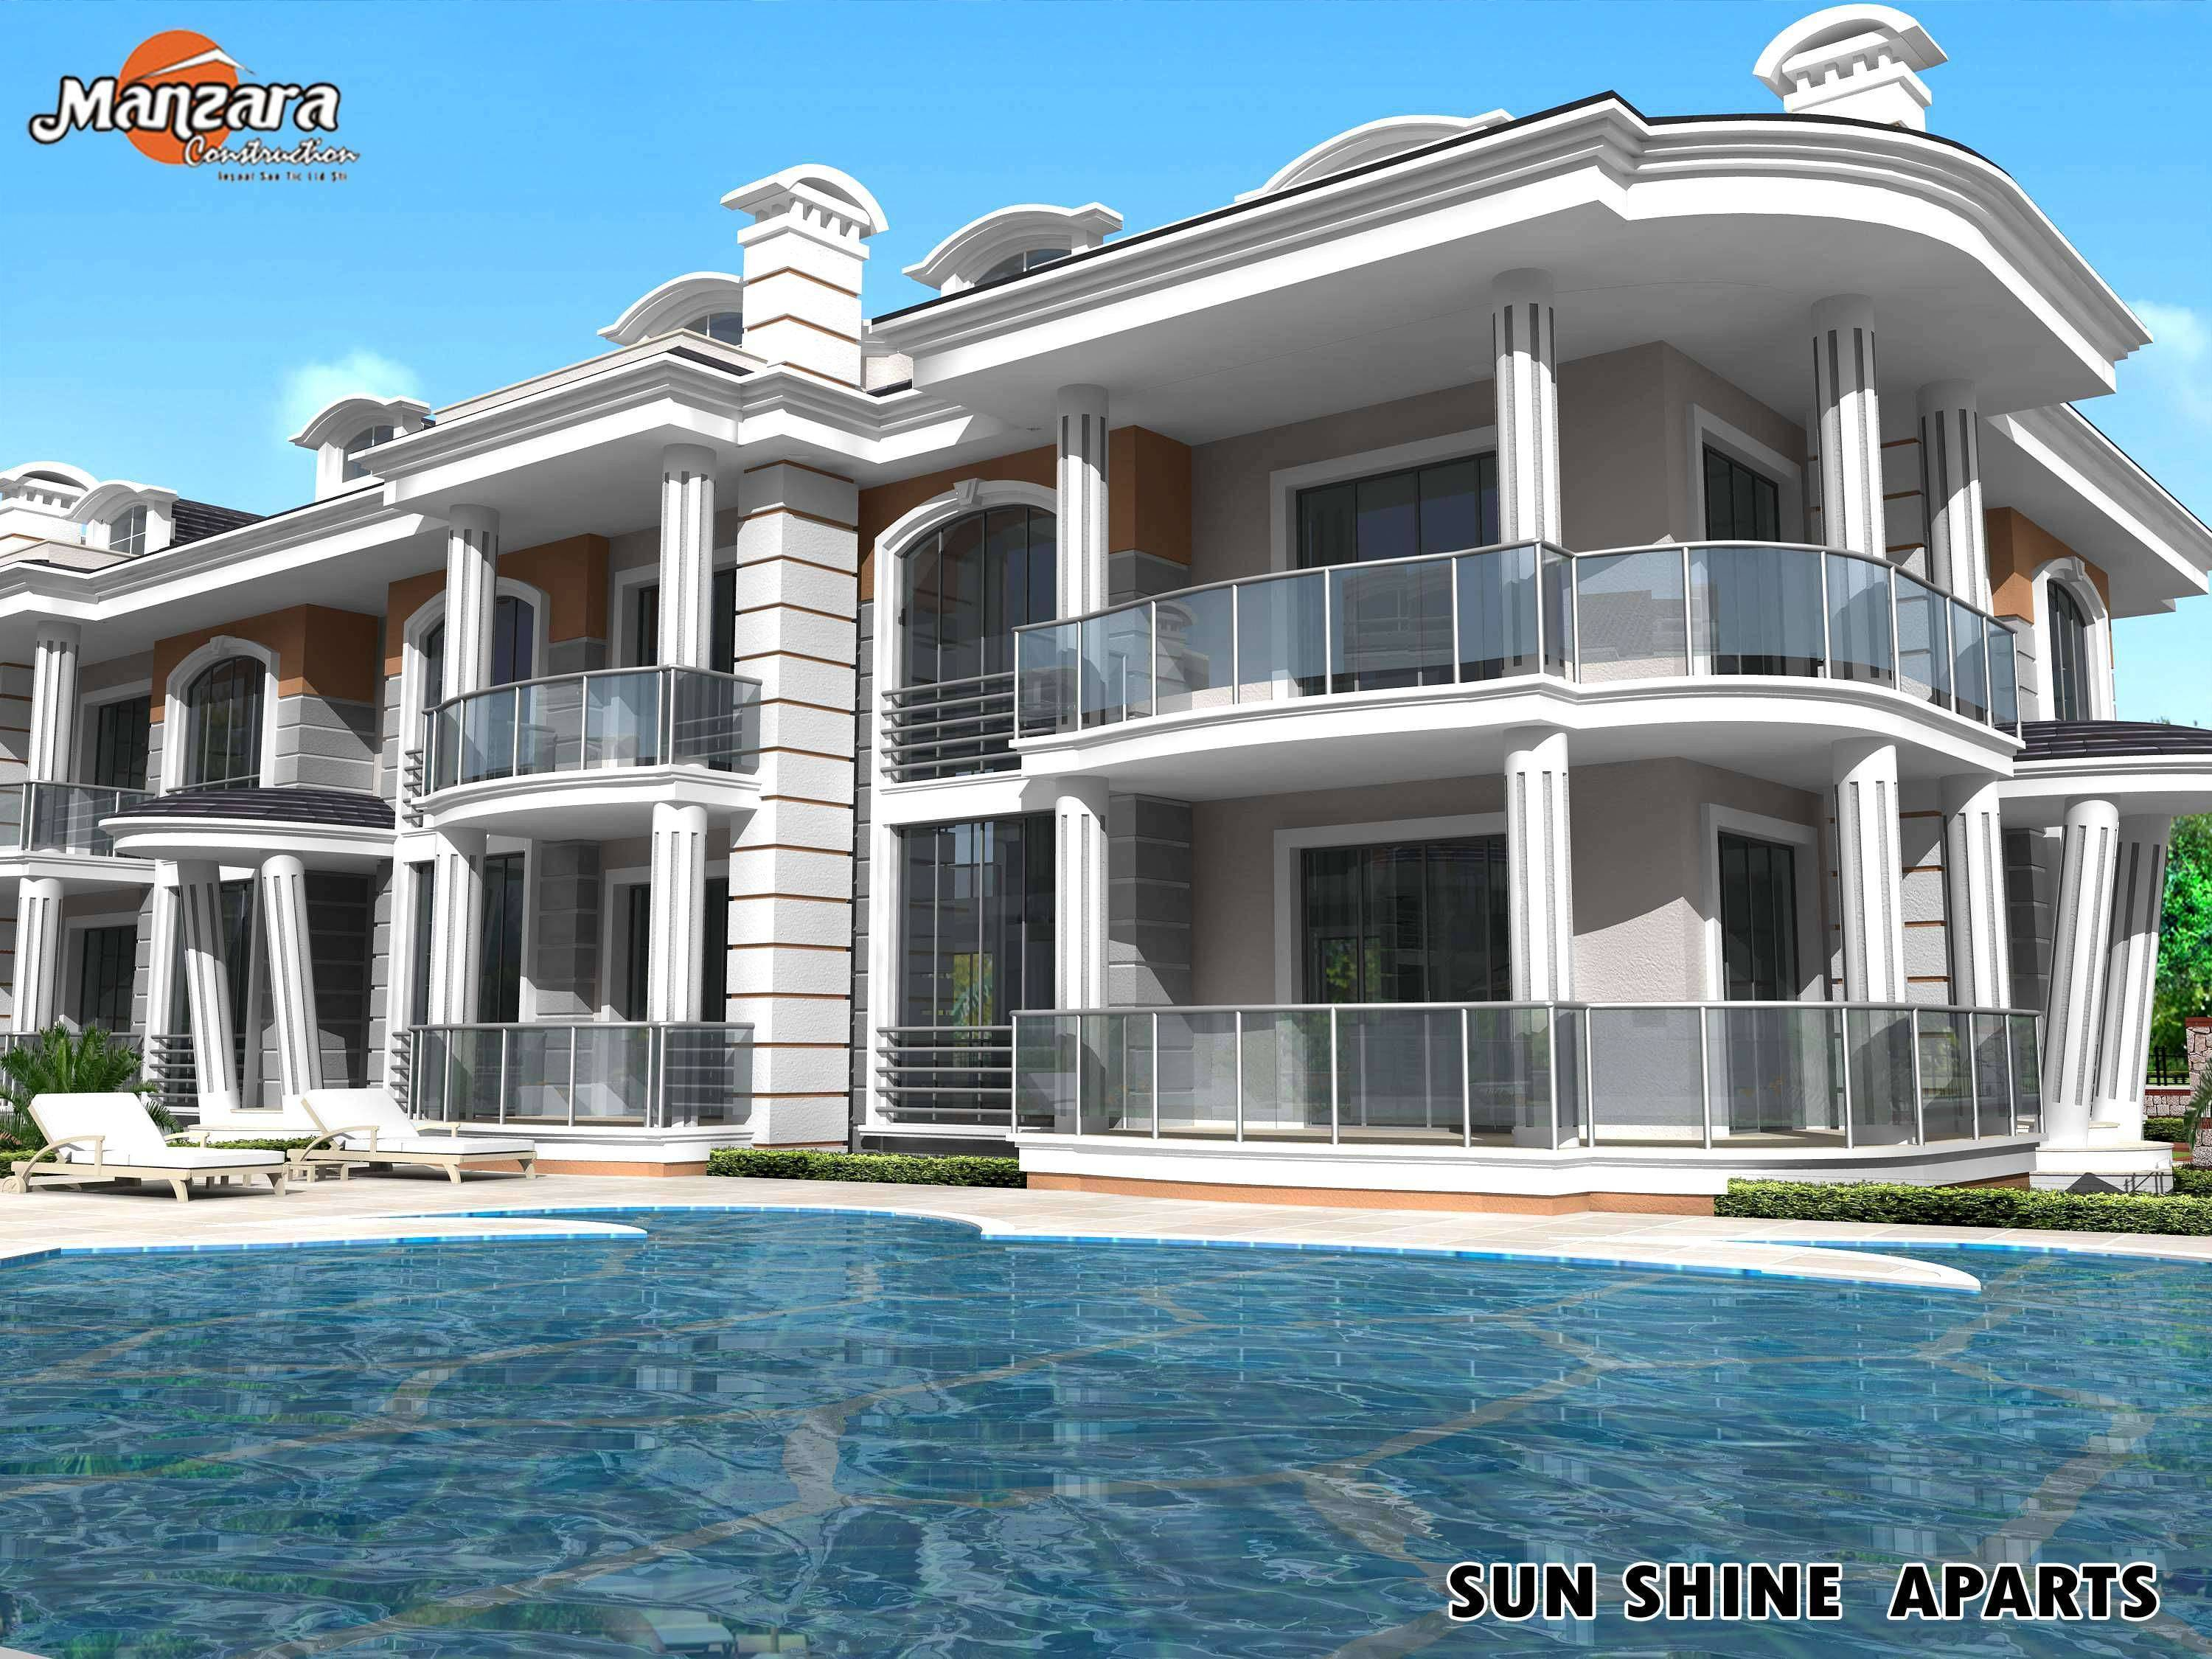 Apartment For Sale Fethiye, Mugla, Turkey   Manzara Construction Sunshine  Investment Apartments Calis (MD242019), 64,000 GBP, 2009 10 02    Mondinion.com ...